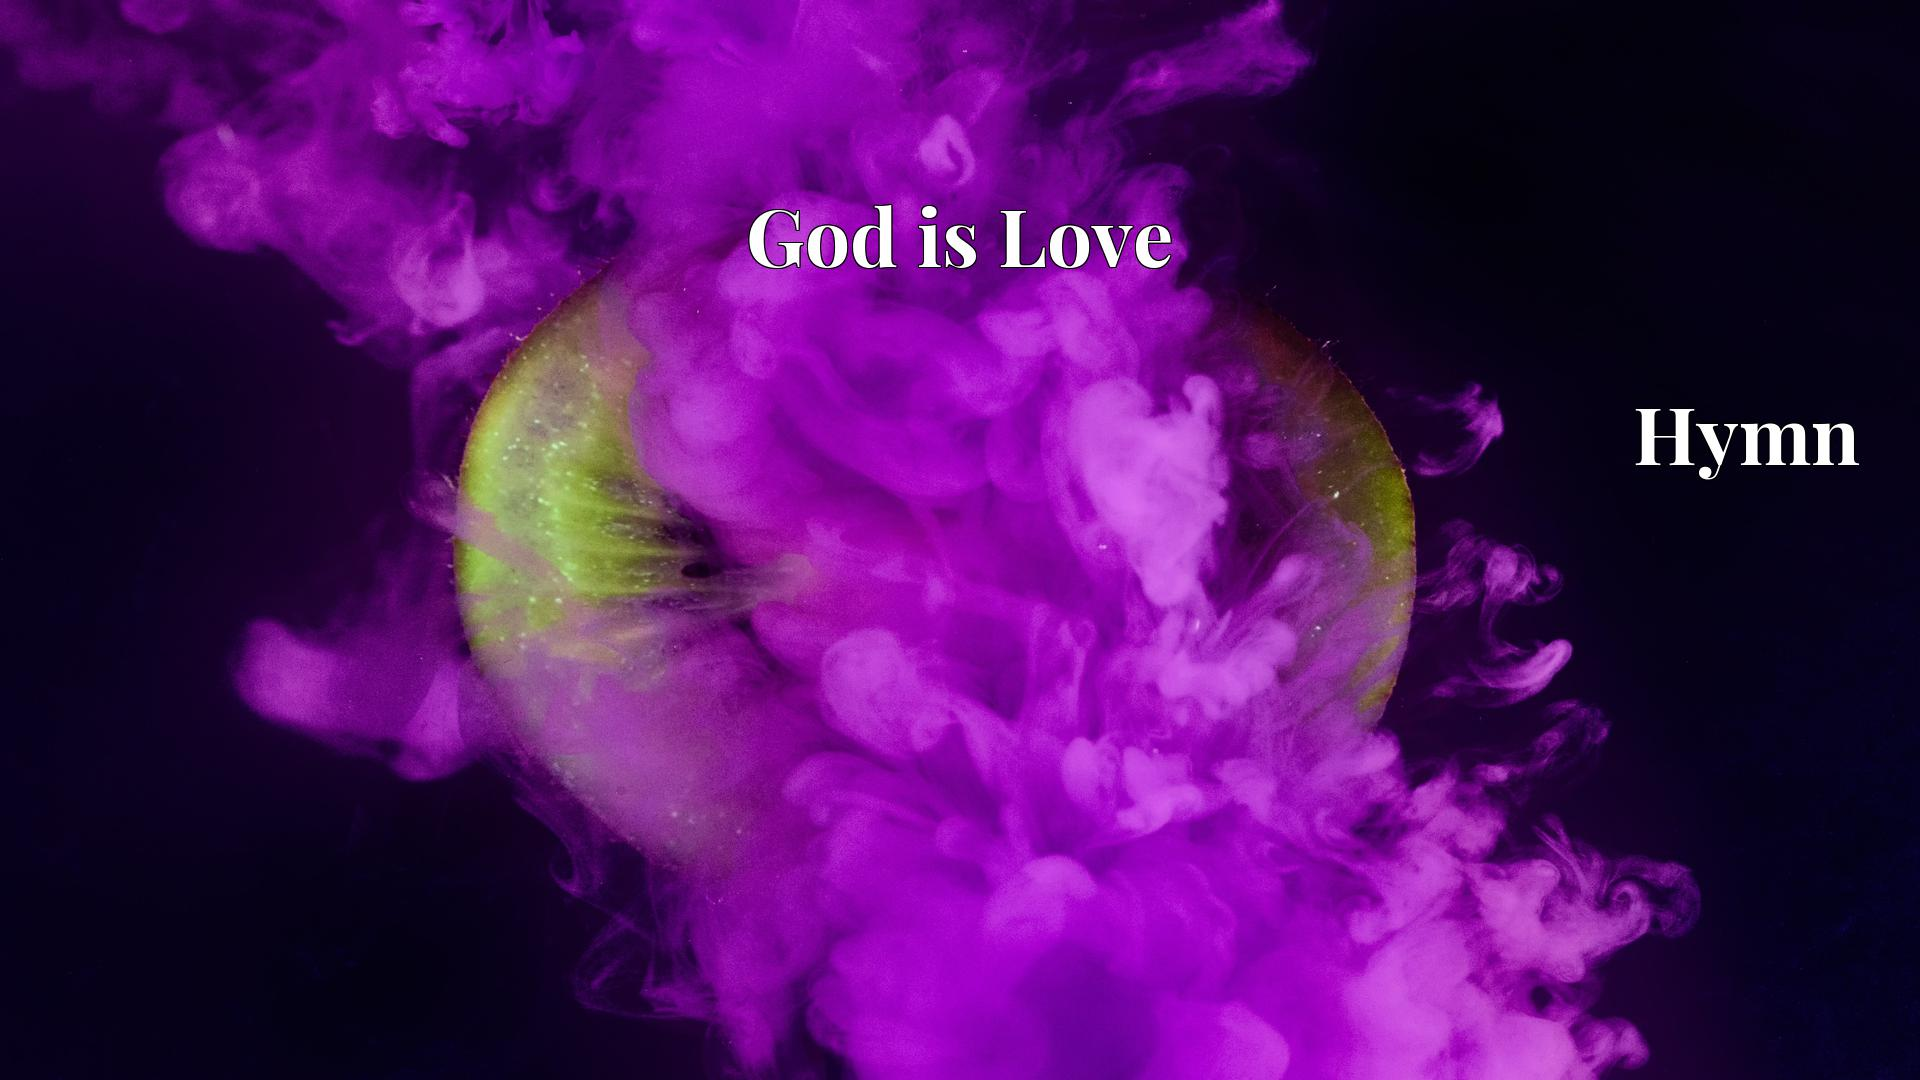 God is Love Hymn